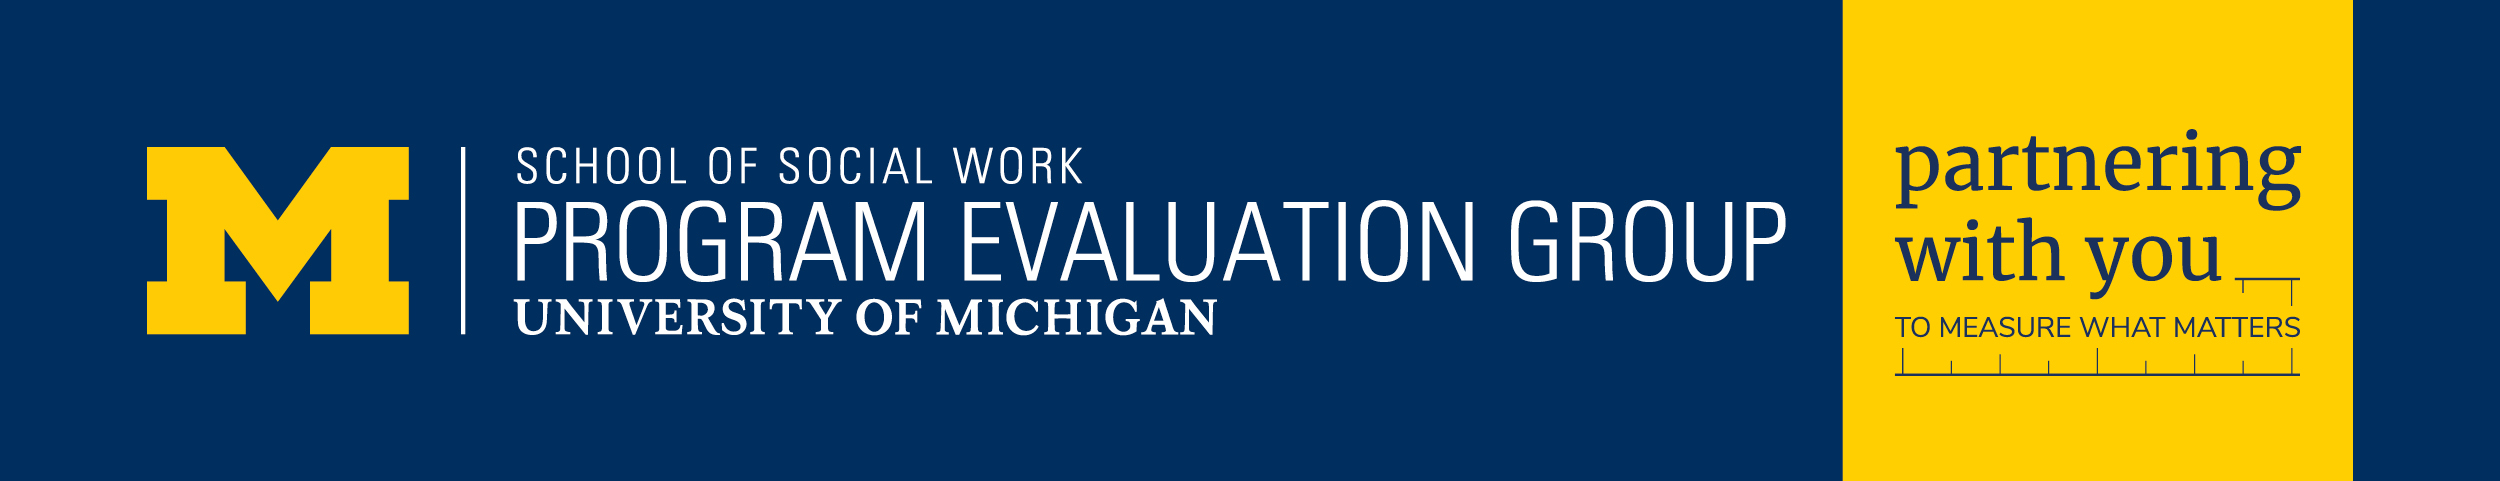 Program Evaluation Group Partnering with you to Measure What Matters